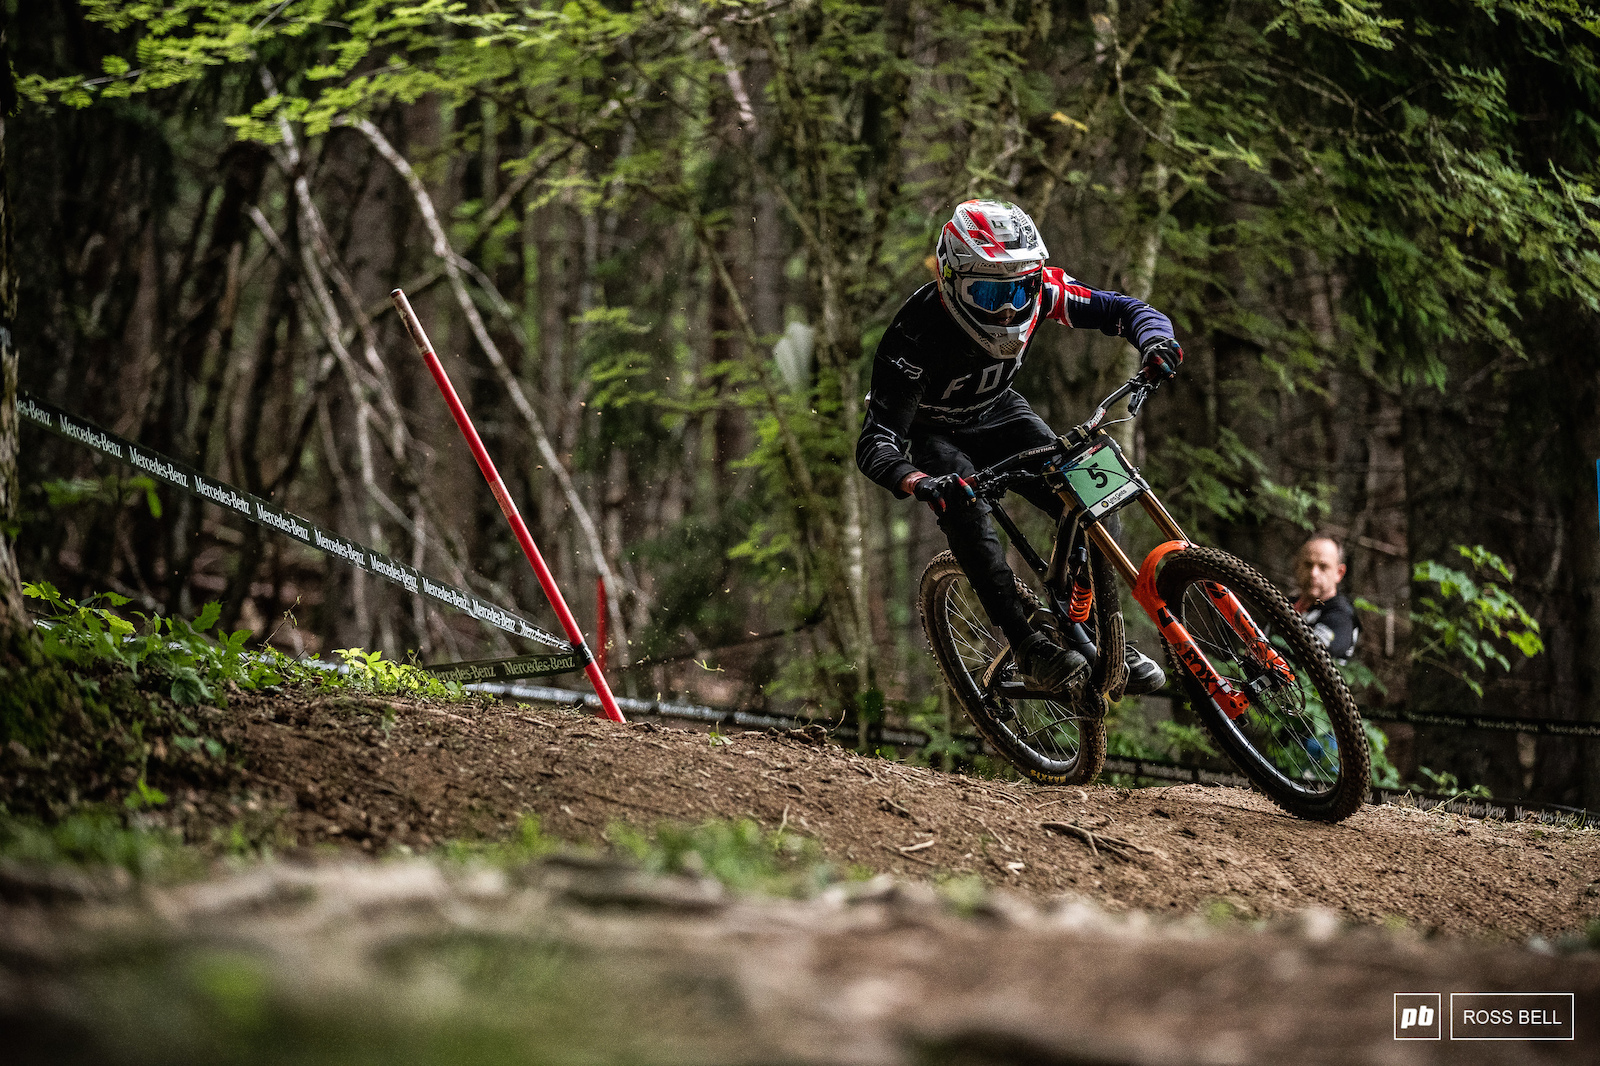 Lachlan Stevens-McNab took third from Oliver Davis by two tenths.